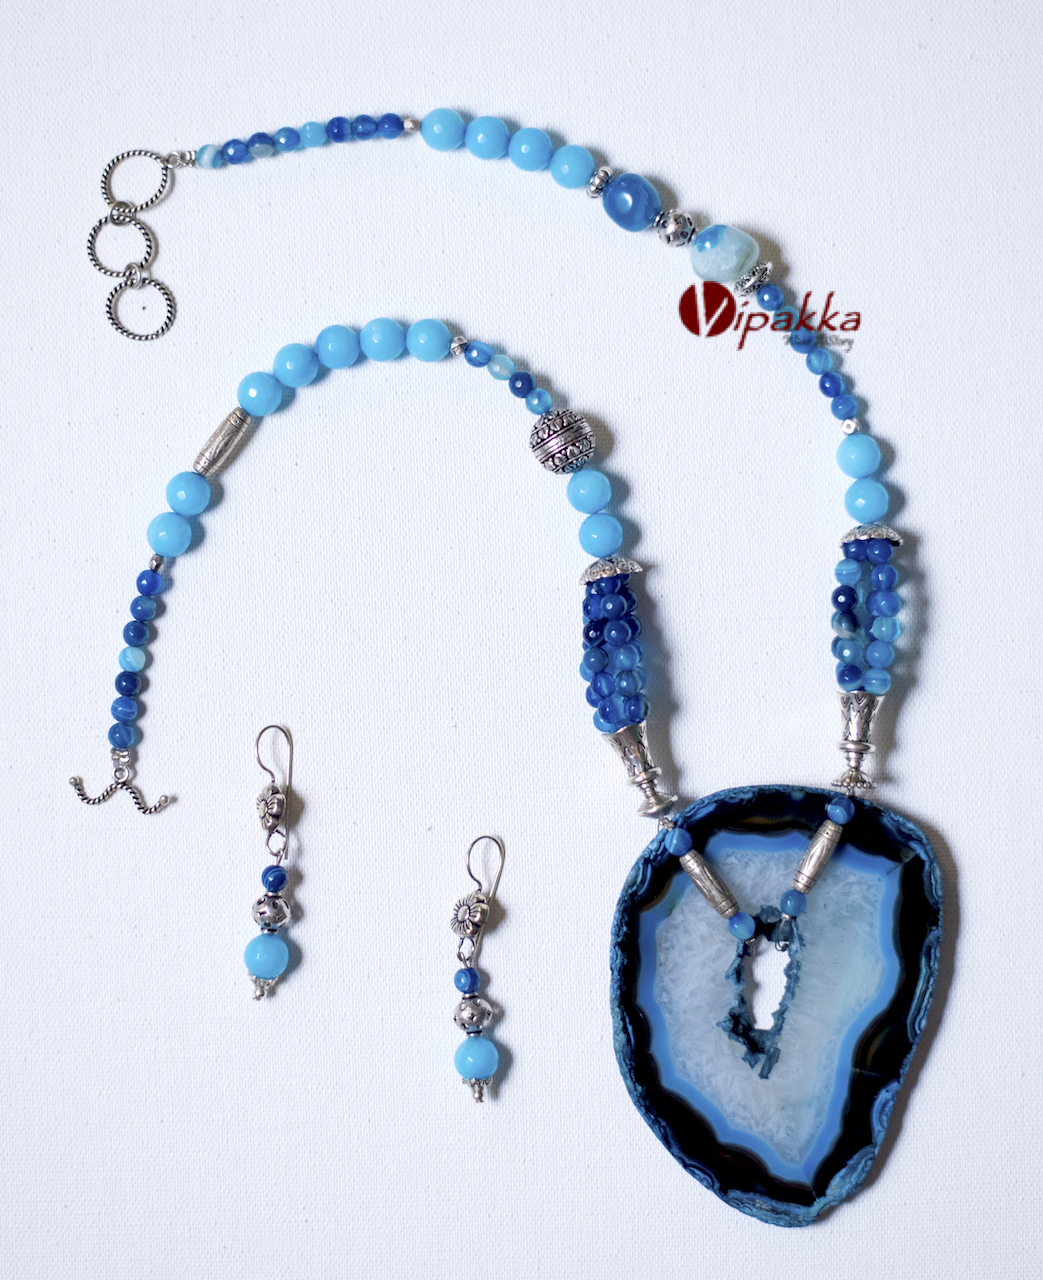 SAJ_4974 Unique and Trendy Agate Stone Necklaces You Should Add To Your Jewelry Box